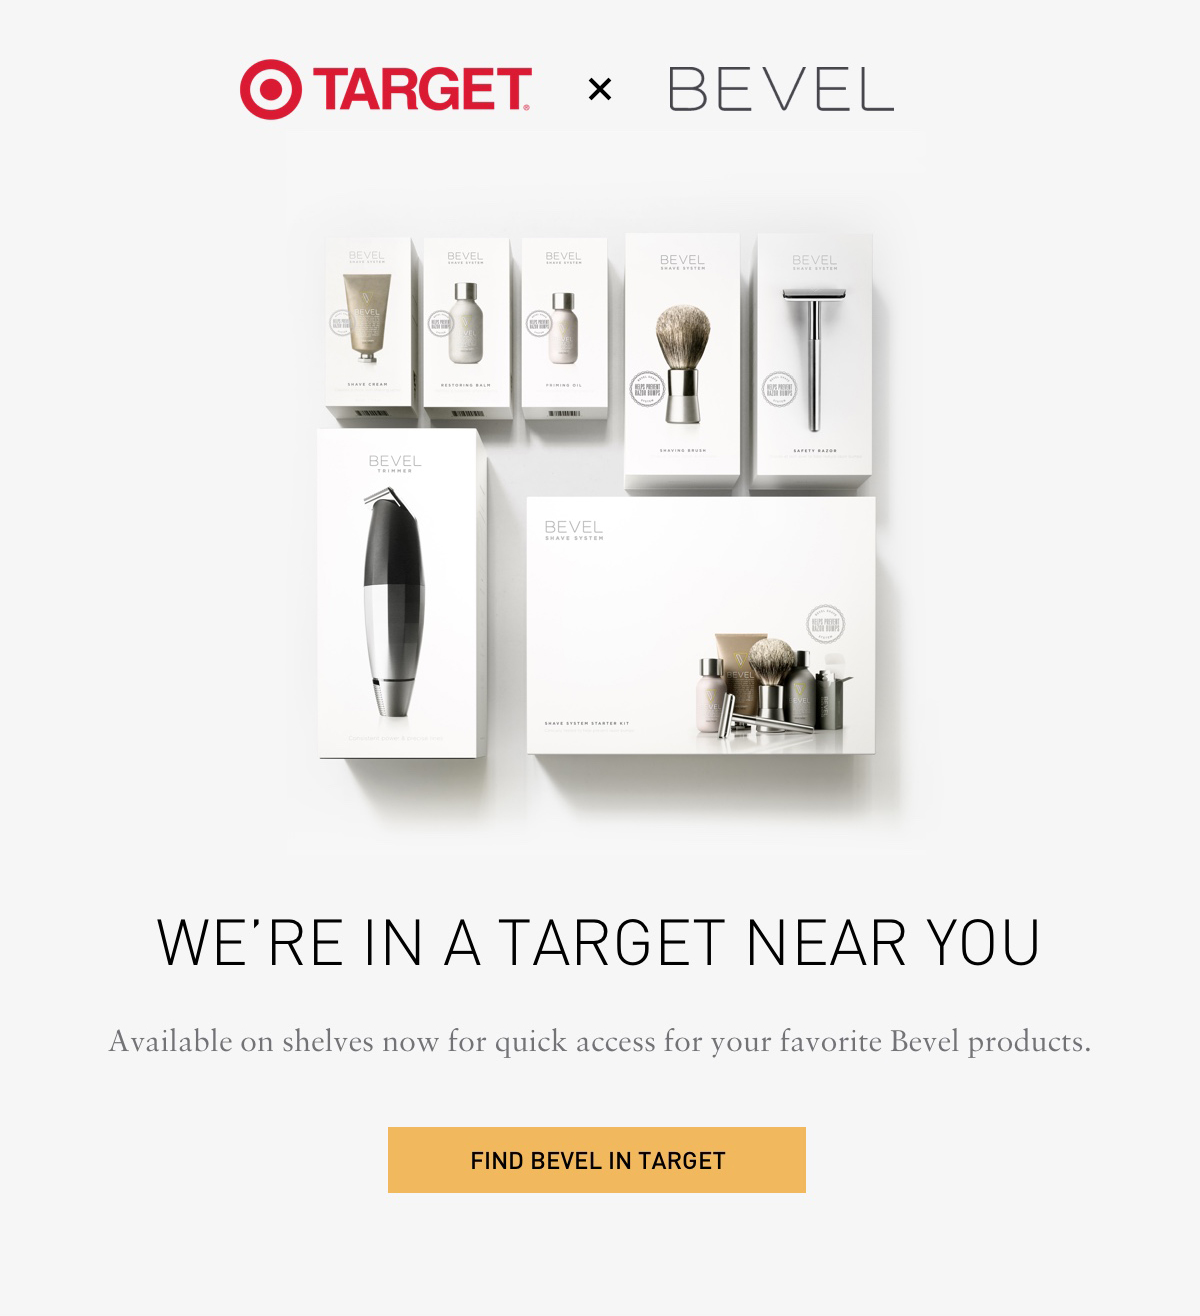 TARGET X Bevel. WE'RE IN A TARGET NEAR YOU. Available on shelves now for quick access for your favorite Bevel products. FIND BEVEL IN TARGET.